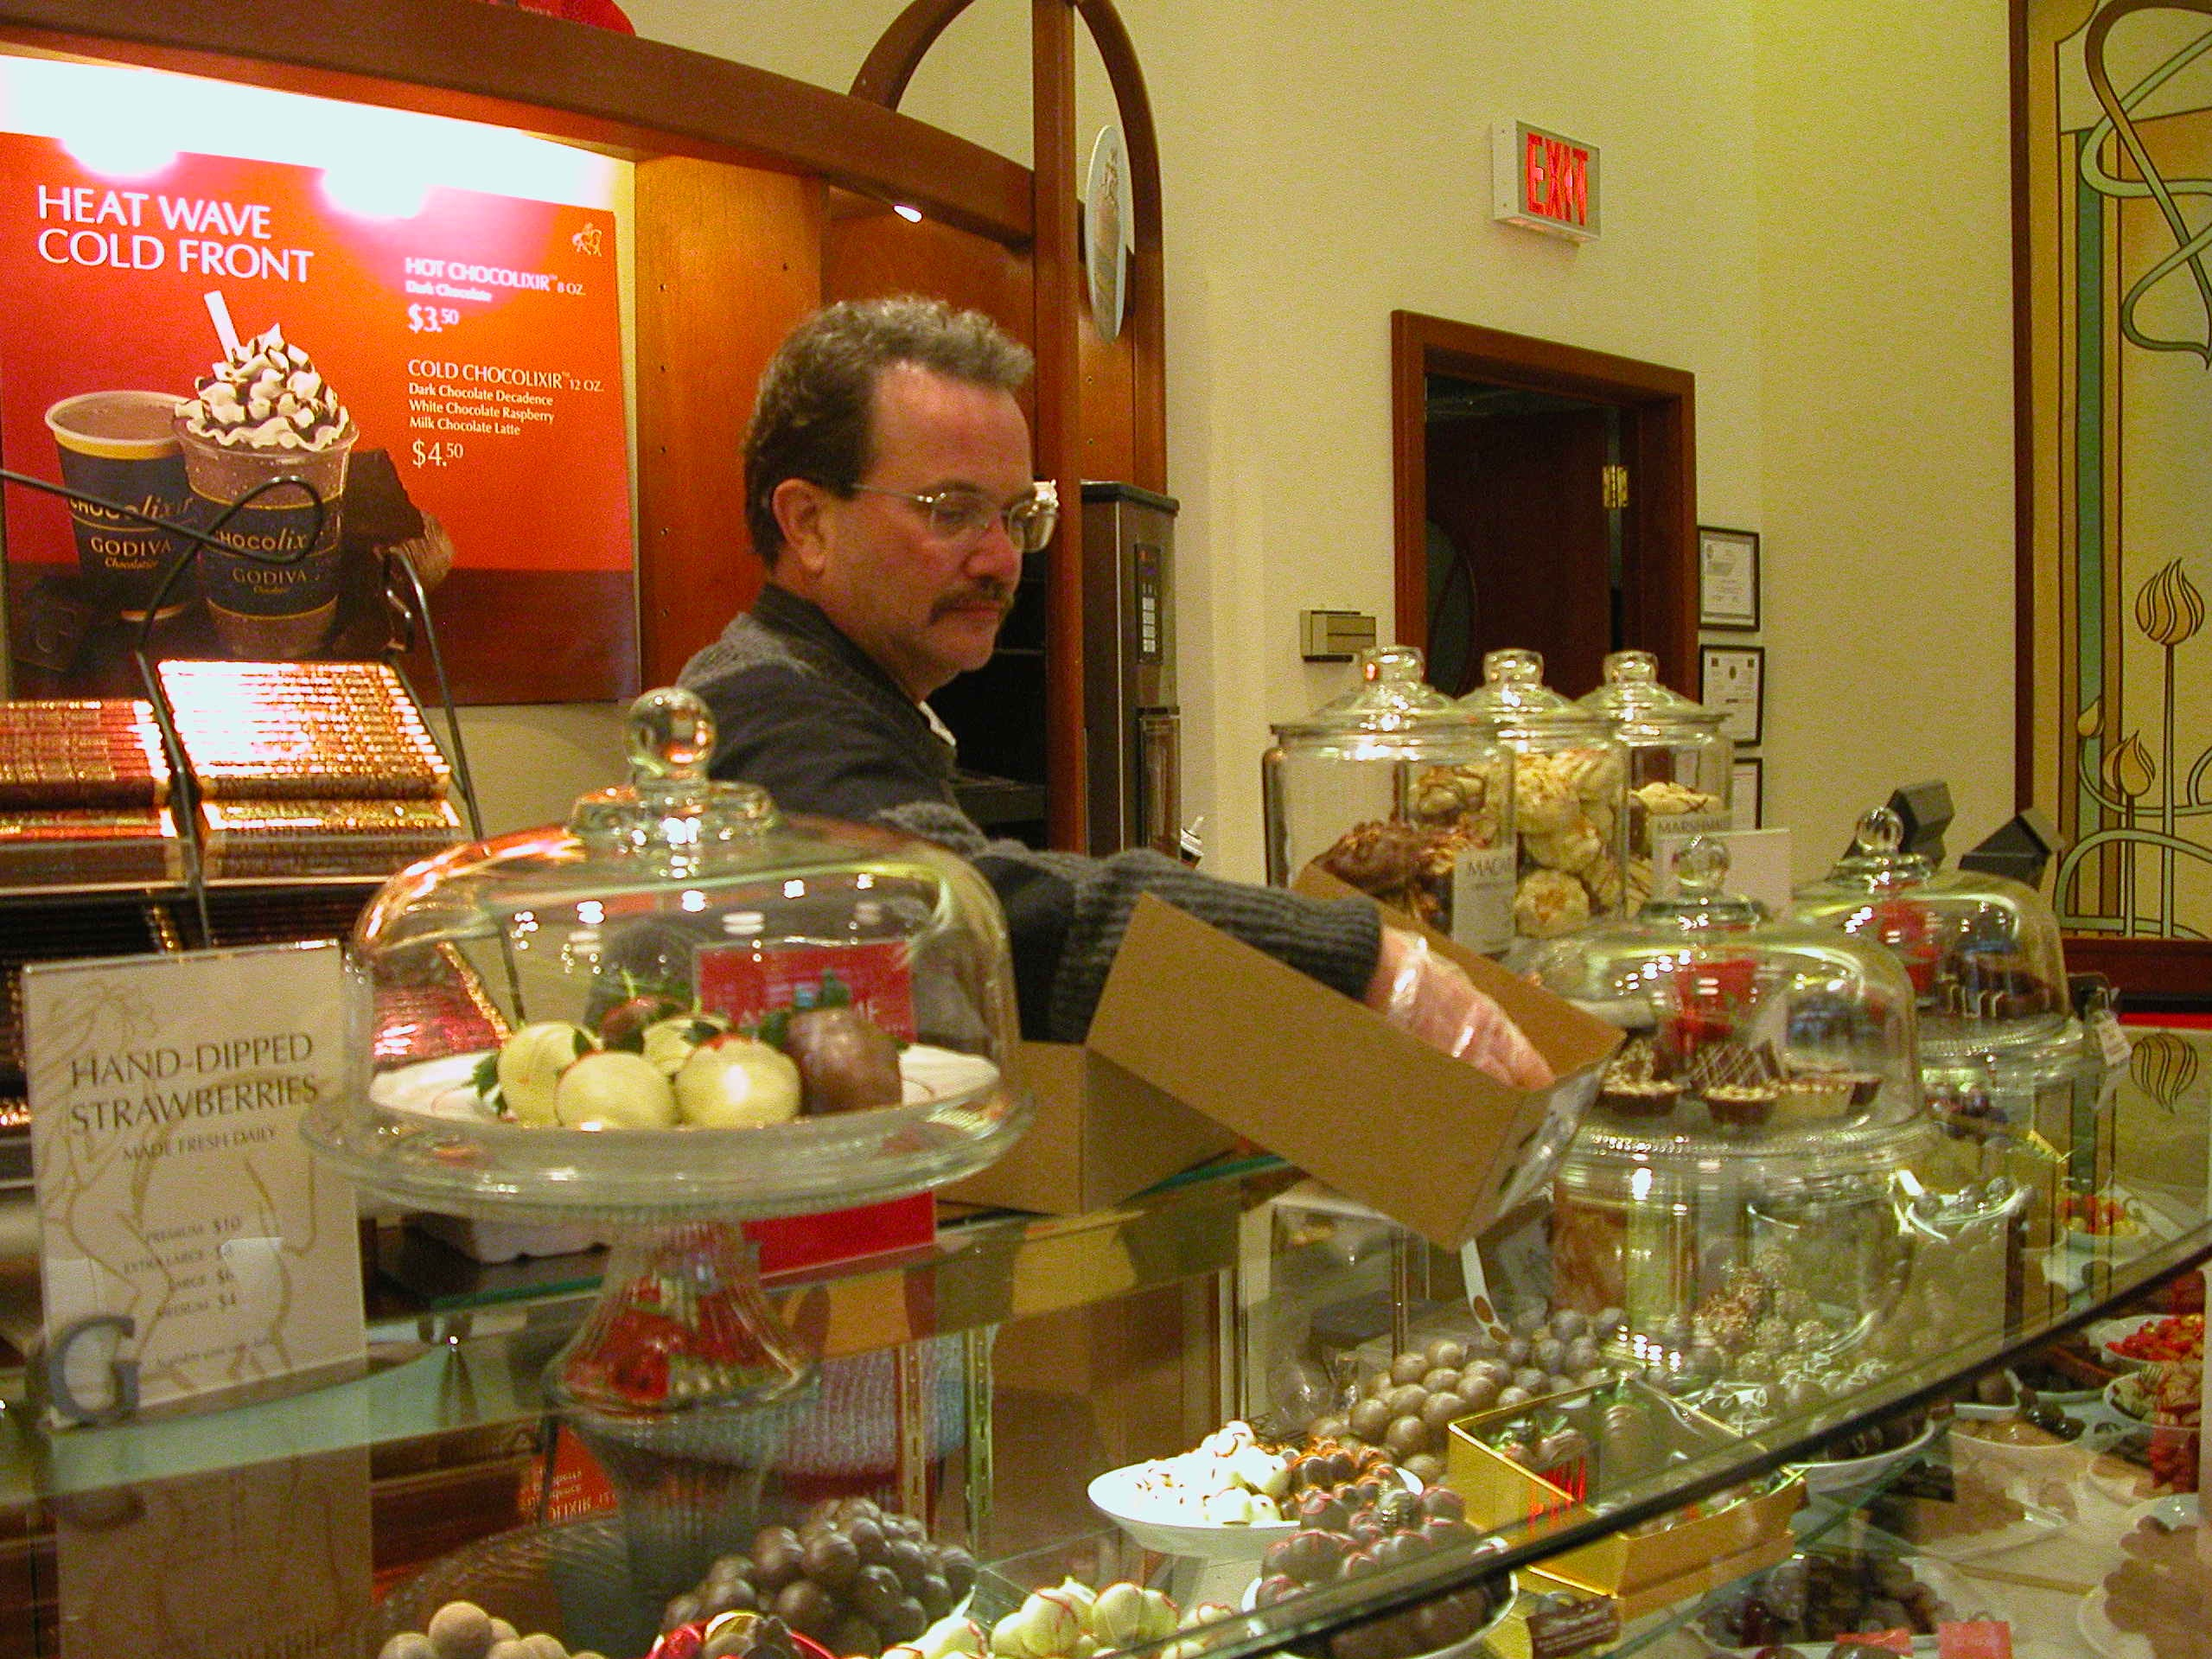 Stan Latham, manager of Godiva Chocolates, prepares gift boxes at West Town Mall.